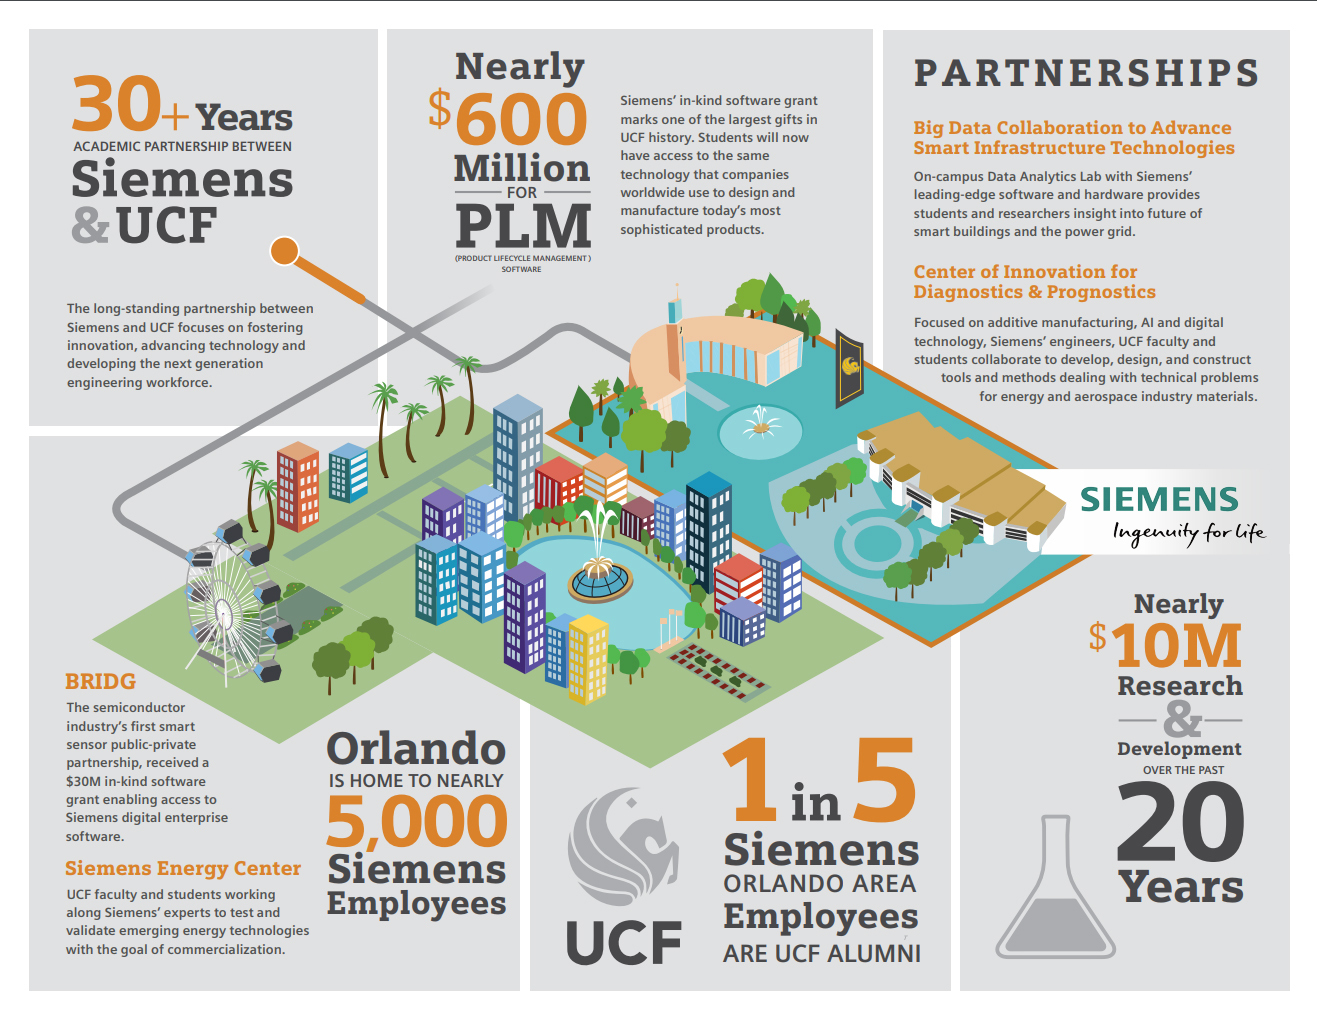 Siemens and UCF to Establish Big Data Collaboration Focused on Advancing Smart Infrastructure Technologies